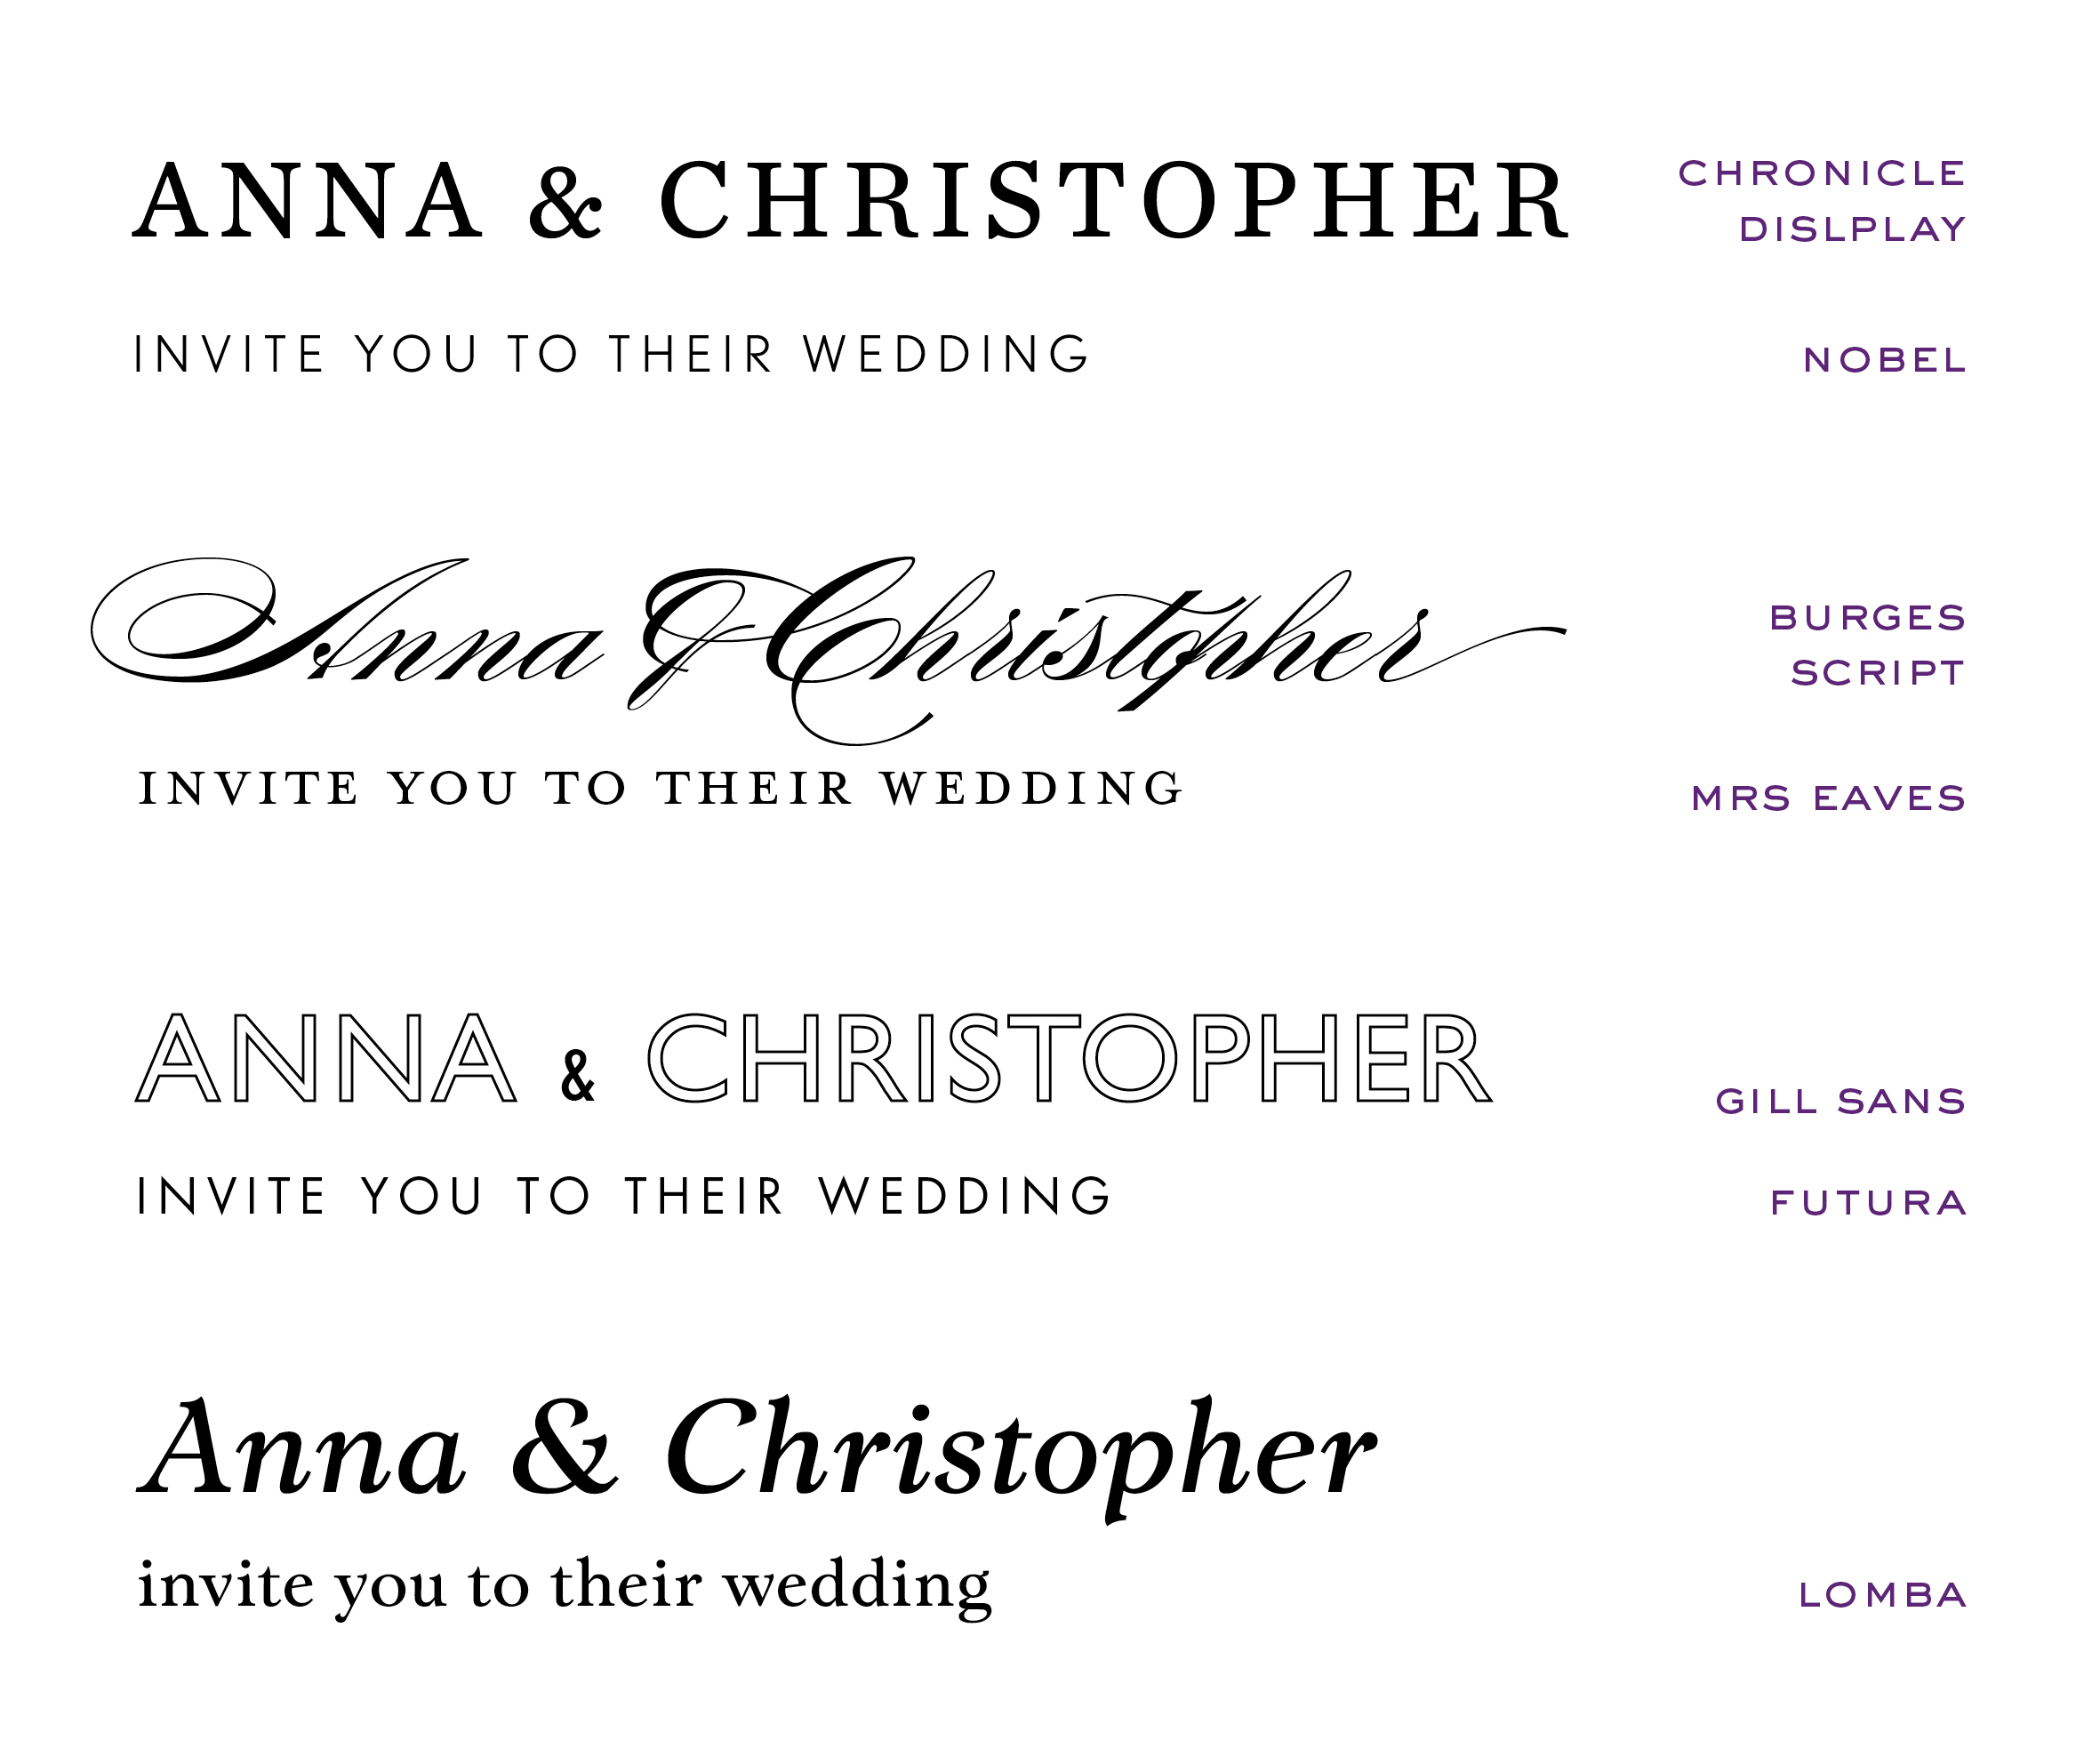 Wedding Invitation Fonts.Wedding Invitation Font Wedding Invitation Fonts At Emily Jo